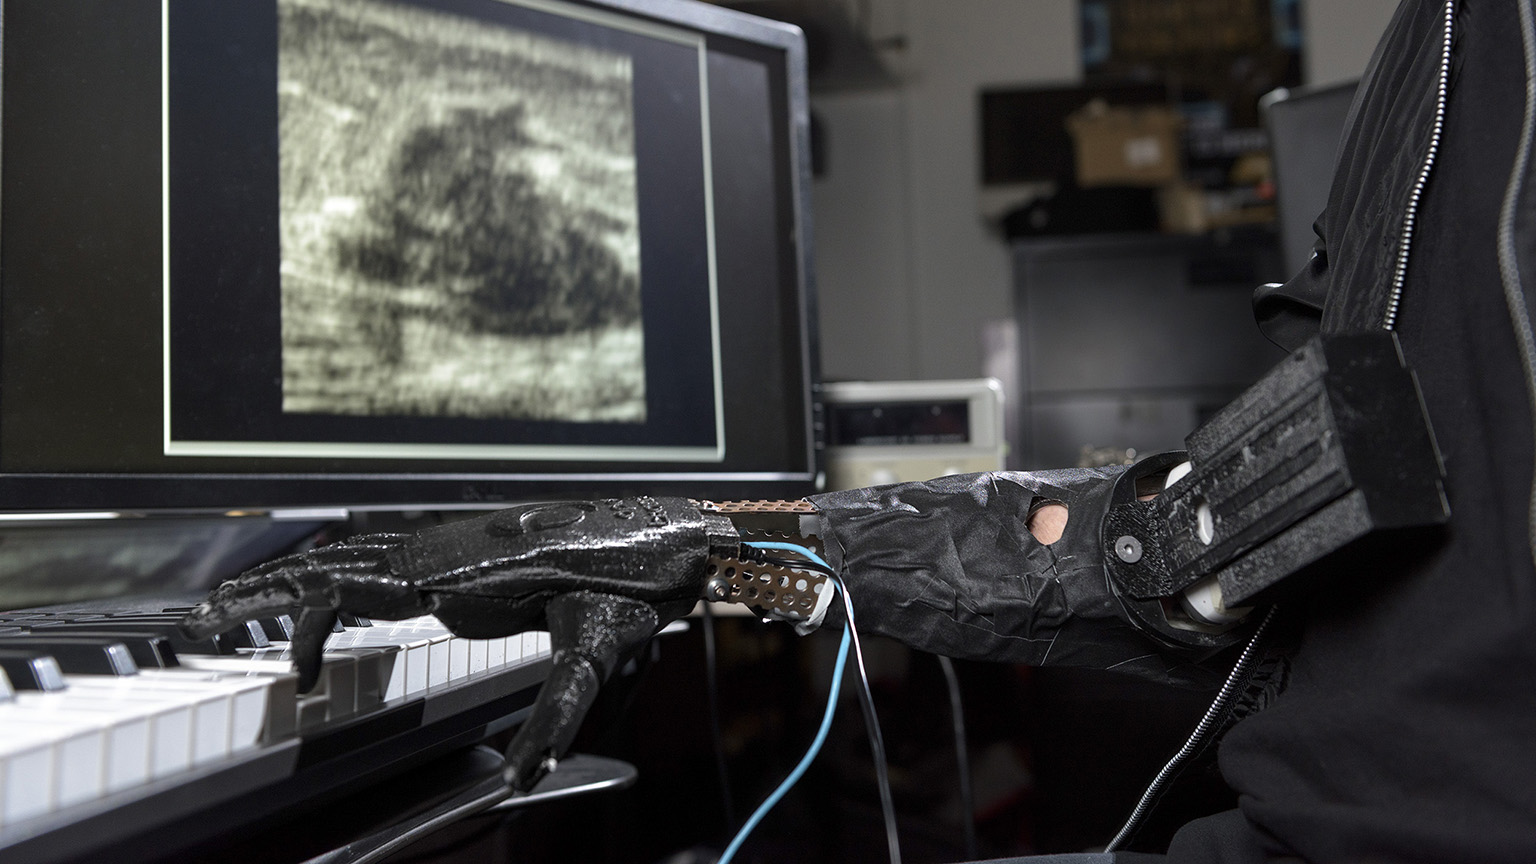 A robotic hand playing music on a piano with a monitor in the background.